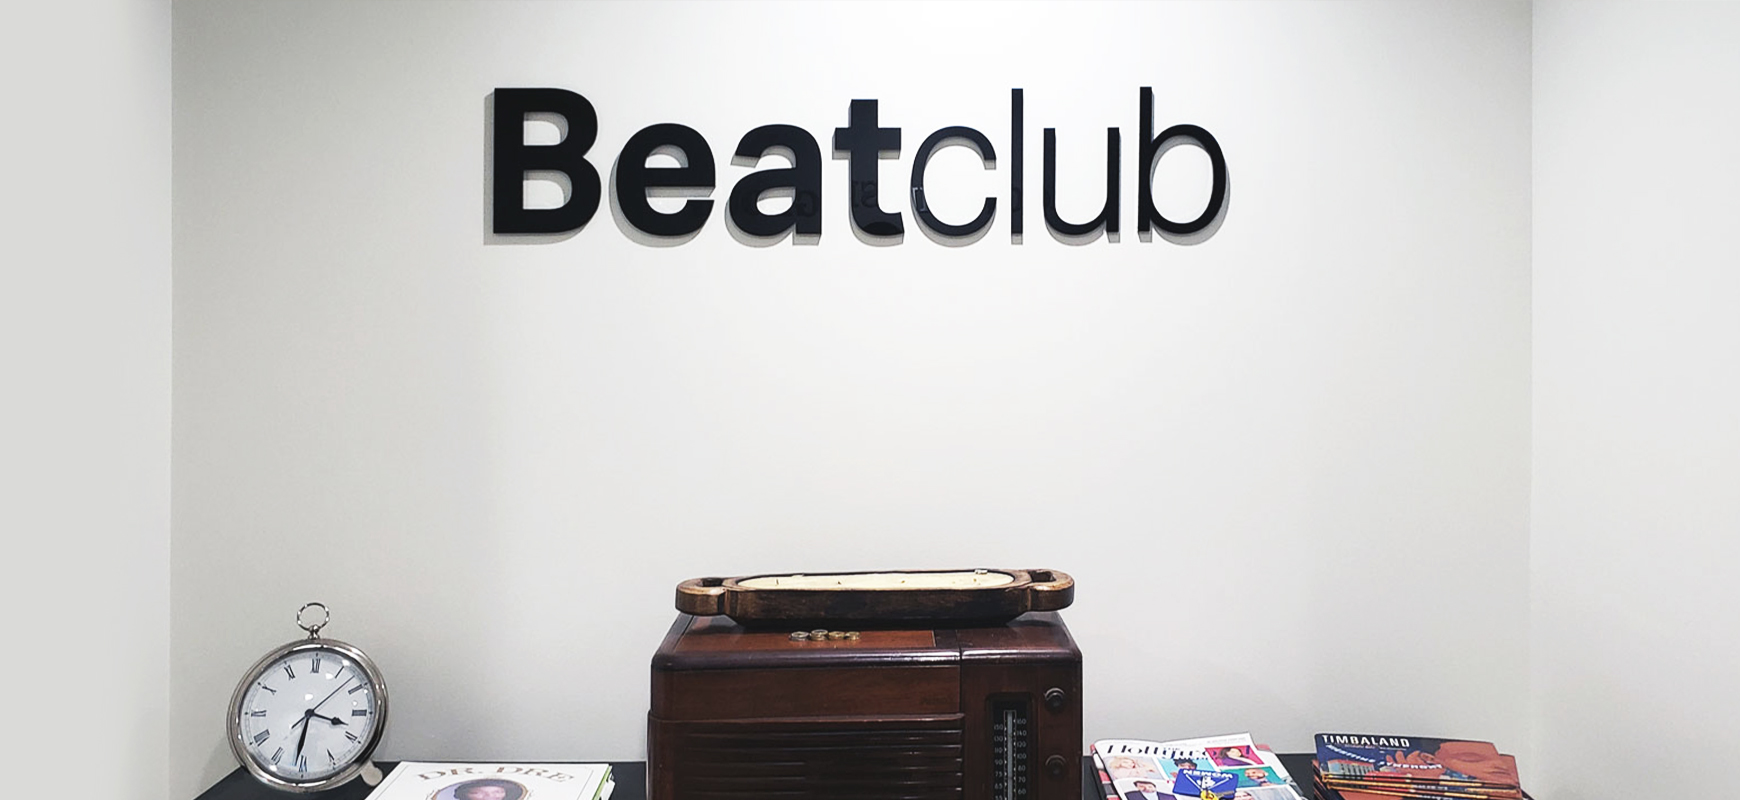 Beatclub office signage in black color displaying brand name 3D letters made of acrylic